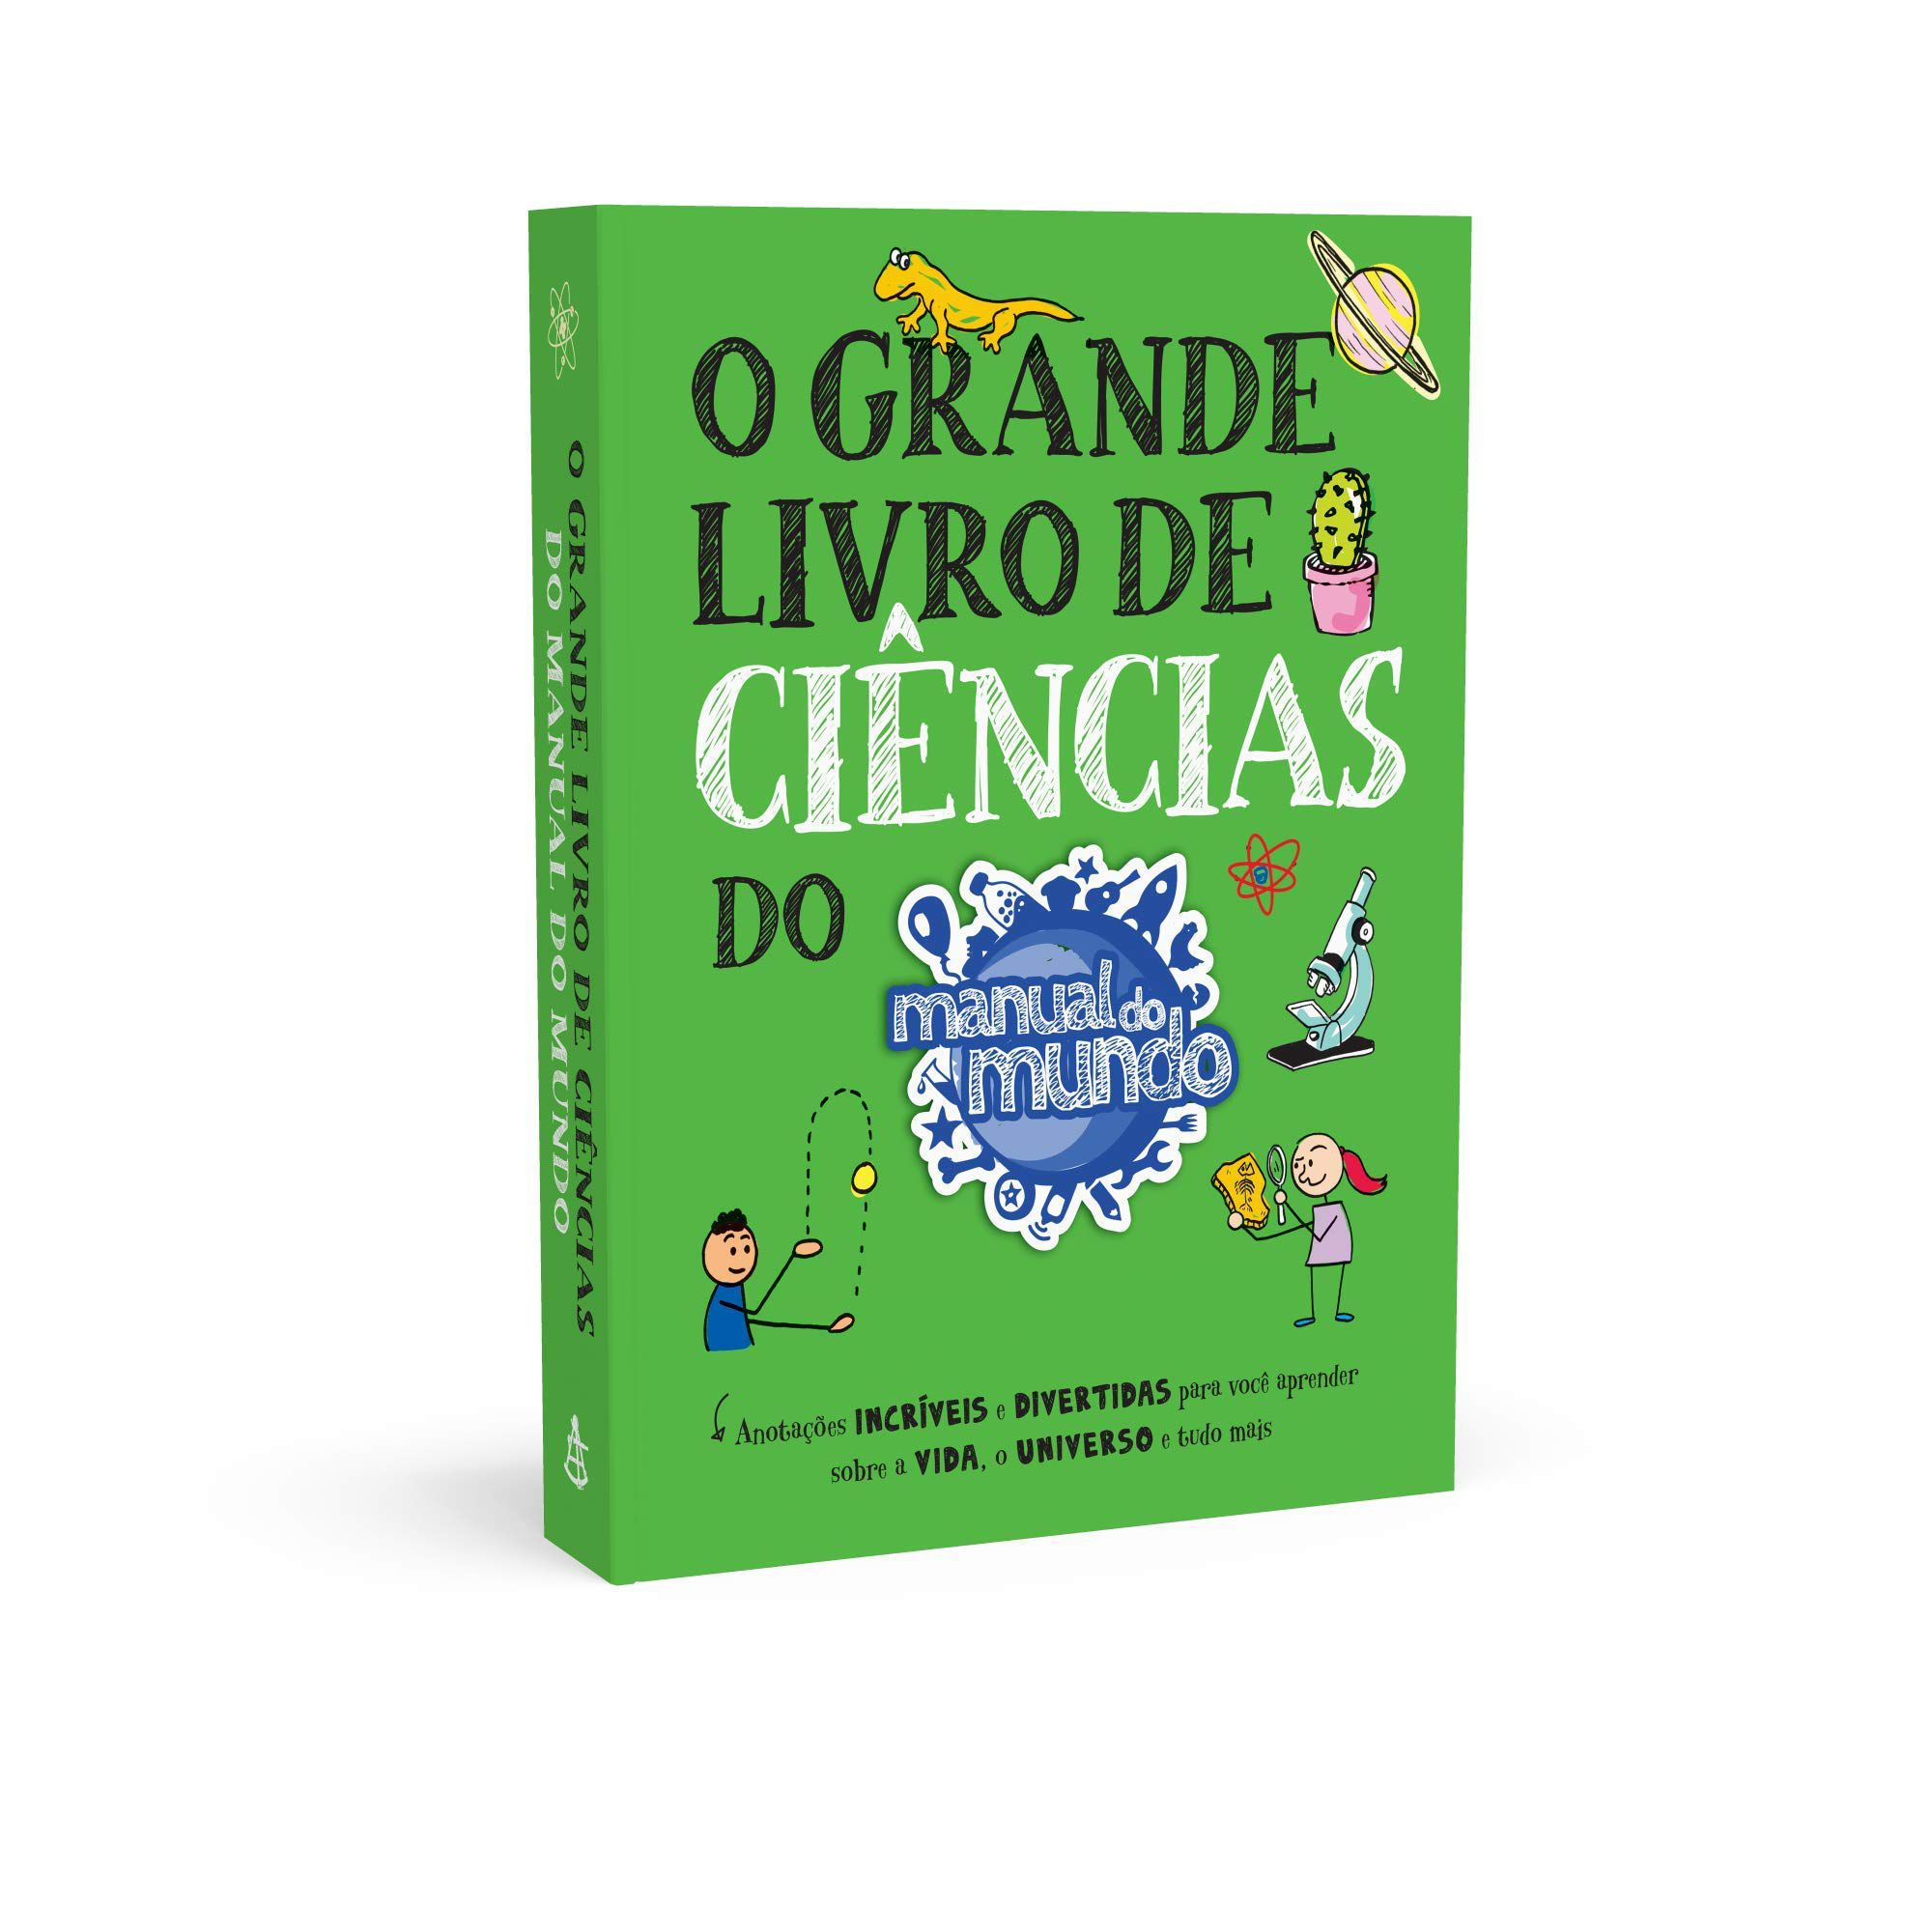 GRANDE LIVRO DE CIENCIAS DO MANUAL DO MUNDO, O - SEXTANTE